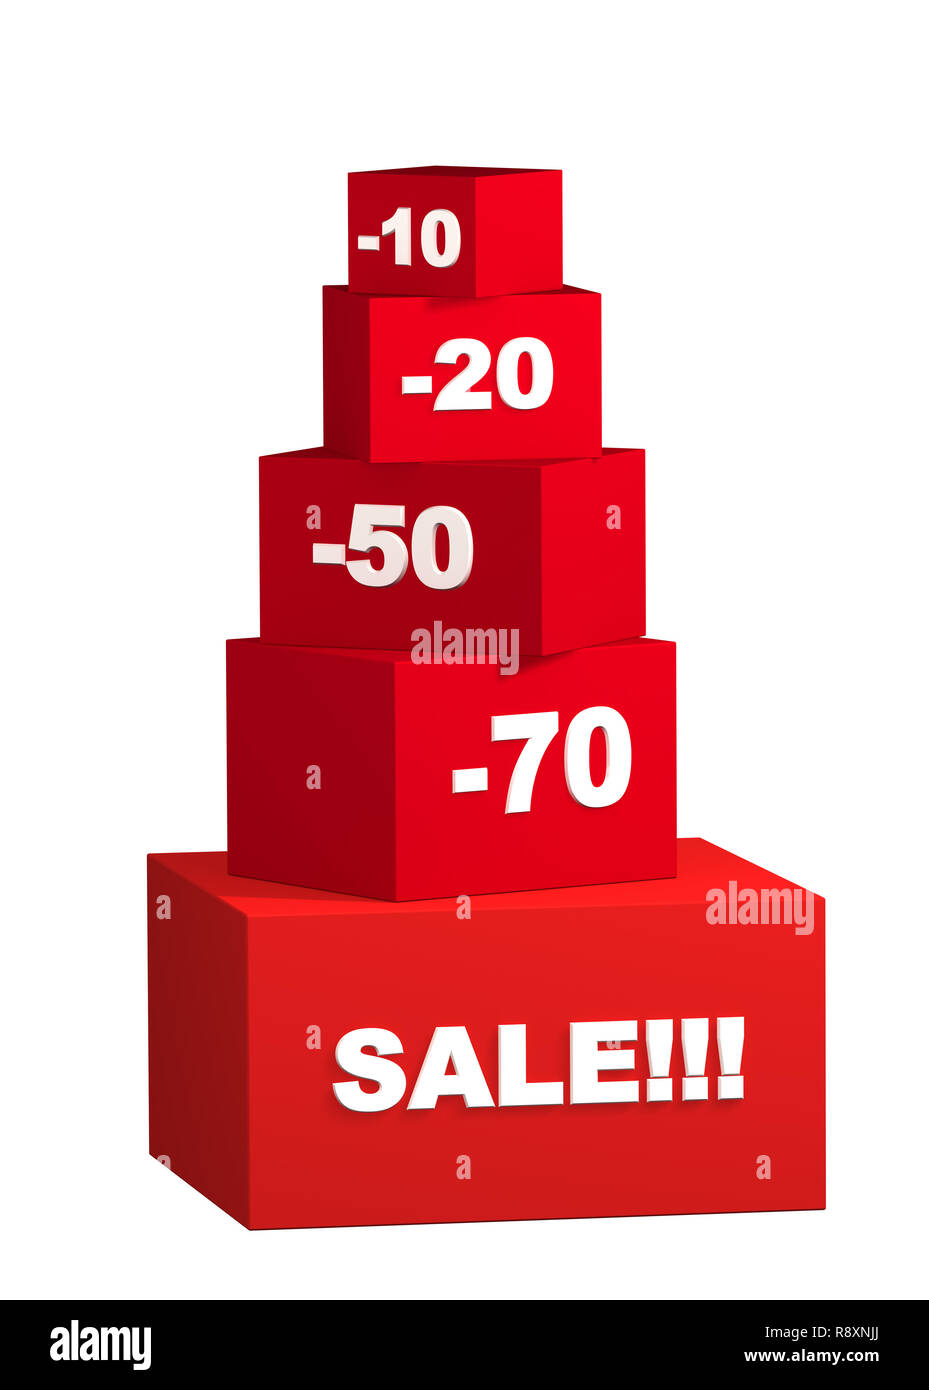 Sale - boxes with the goods for reduced prices. Objects over white - Stock Image